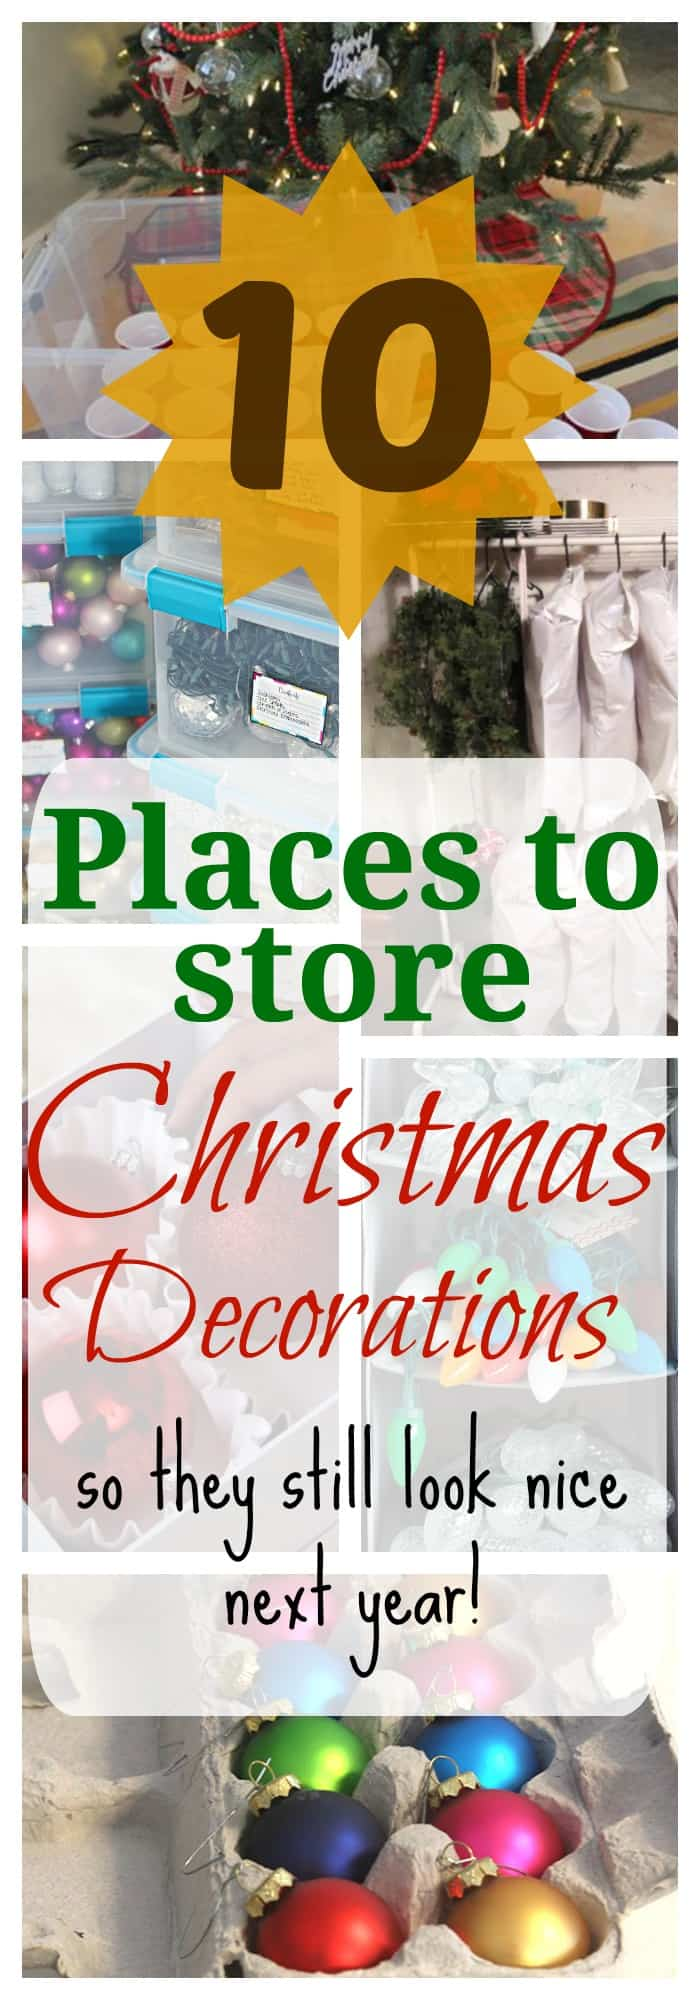 Places to store christmas decorations so they still look nice next year